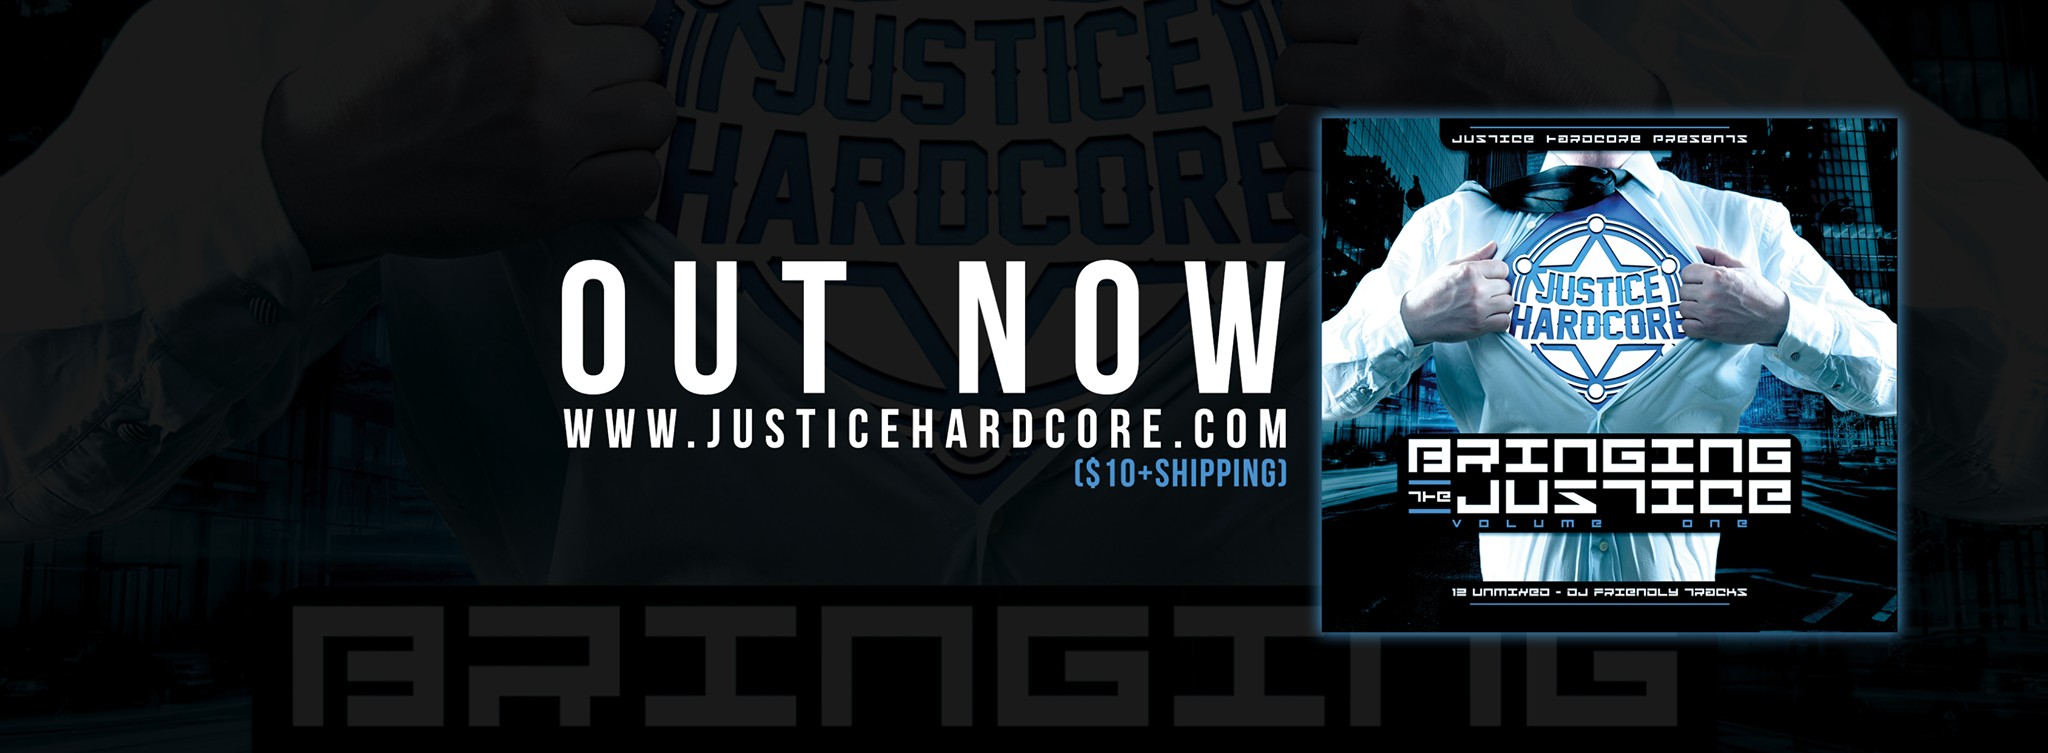 BRINGING THE JUSTICE VOL.1